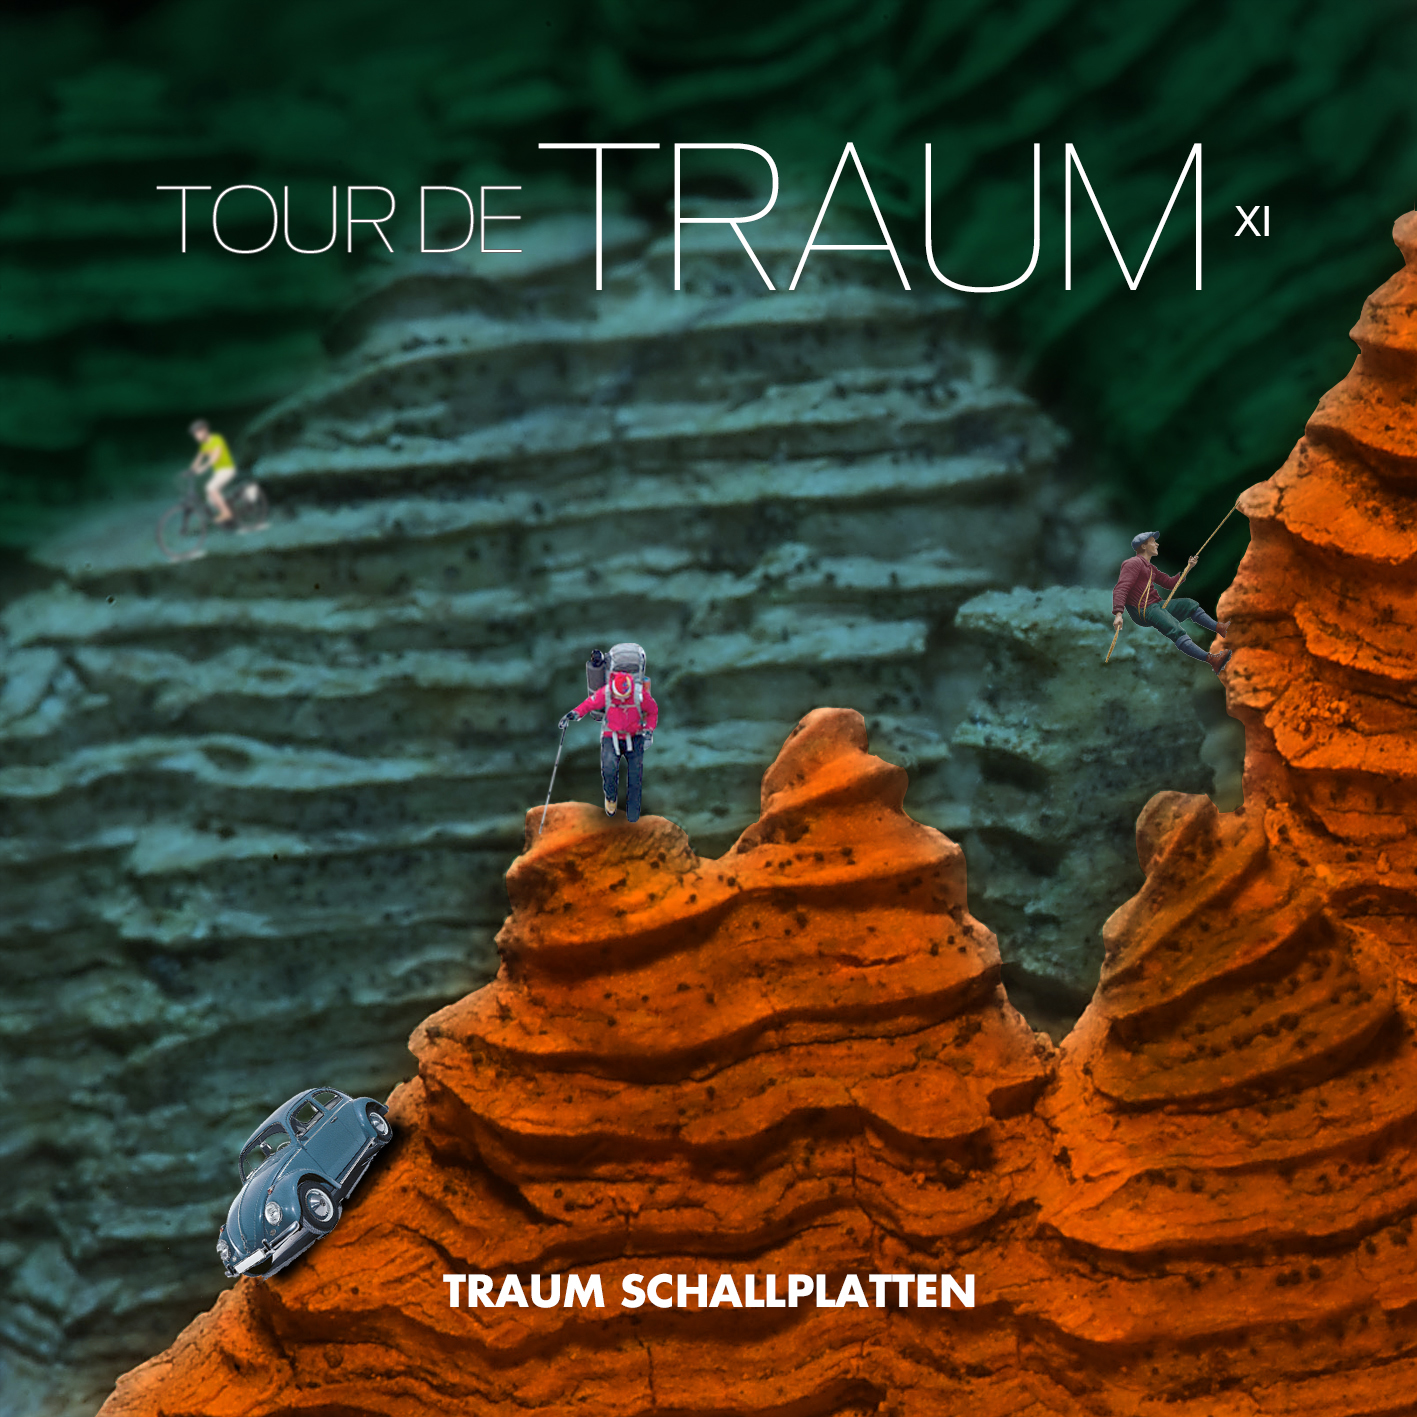 37 Tour Traum Cd Digital 37 Tour De Traum Xi Mixed By Riley Reinhold